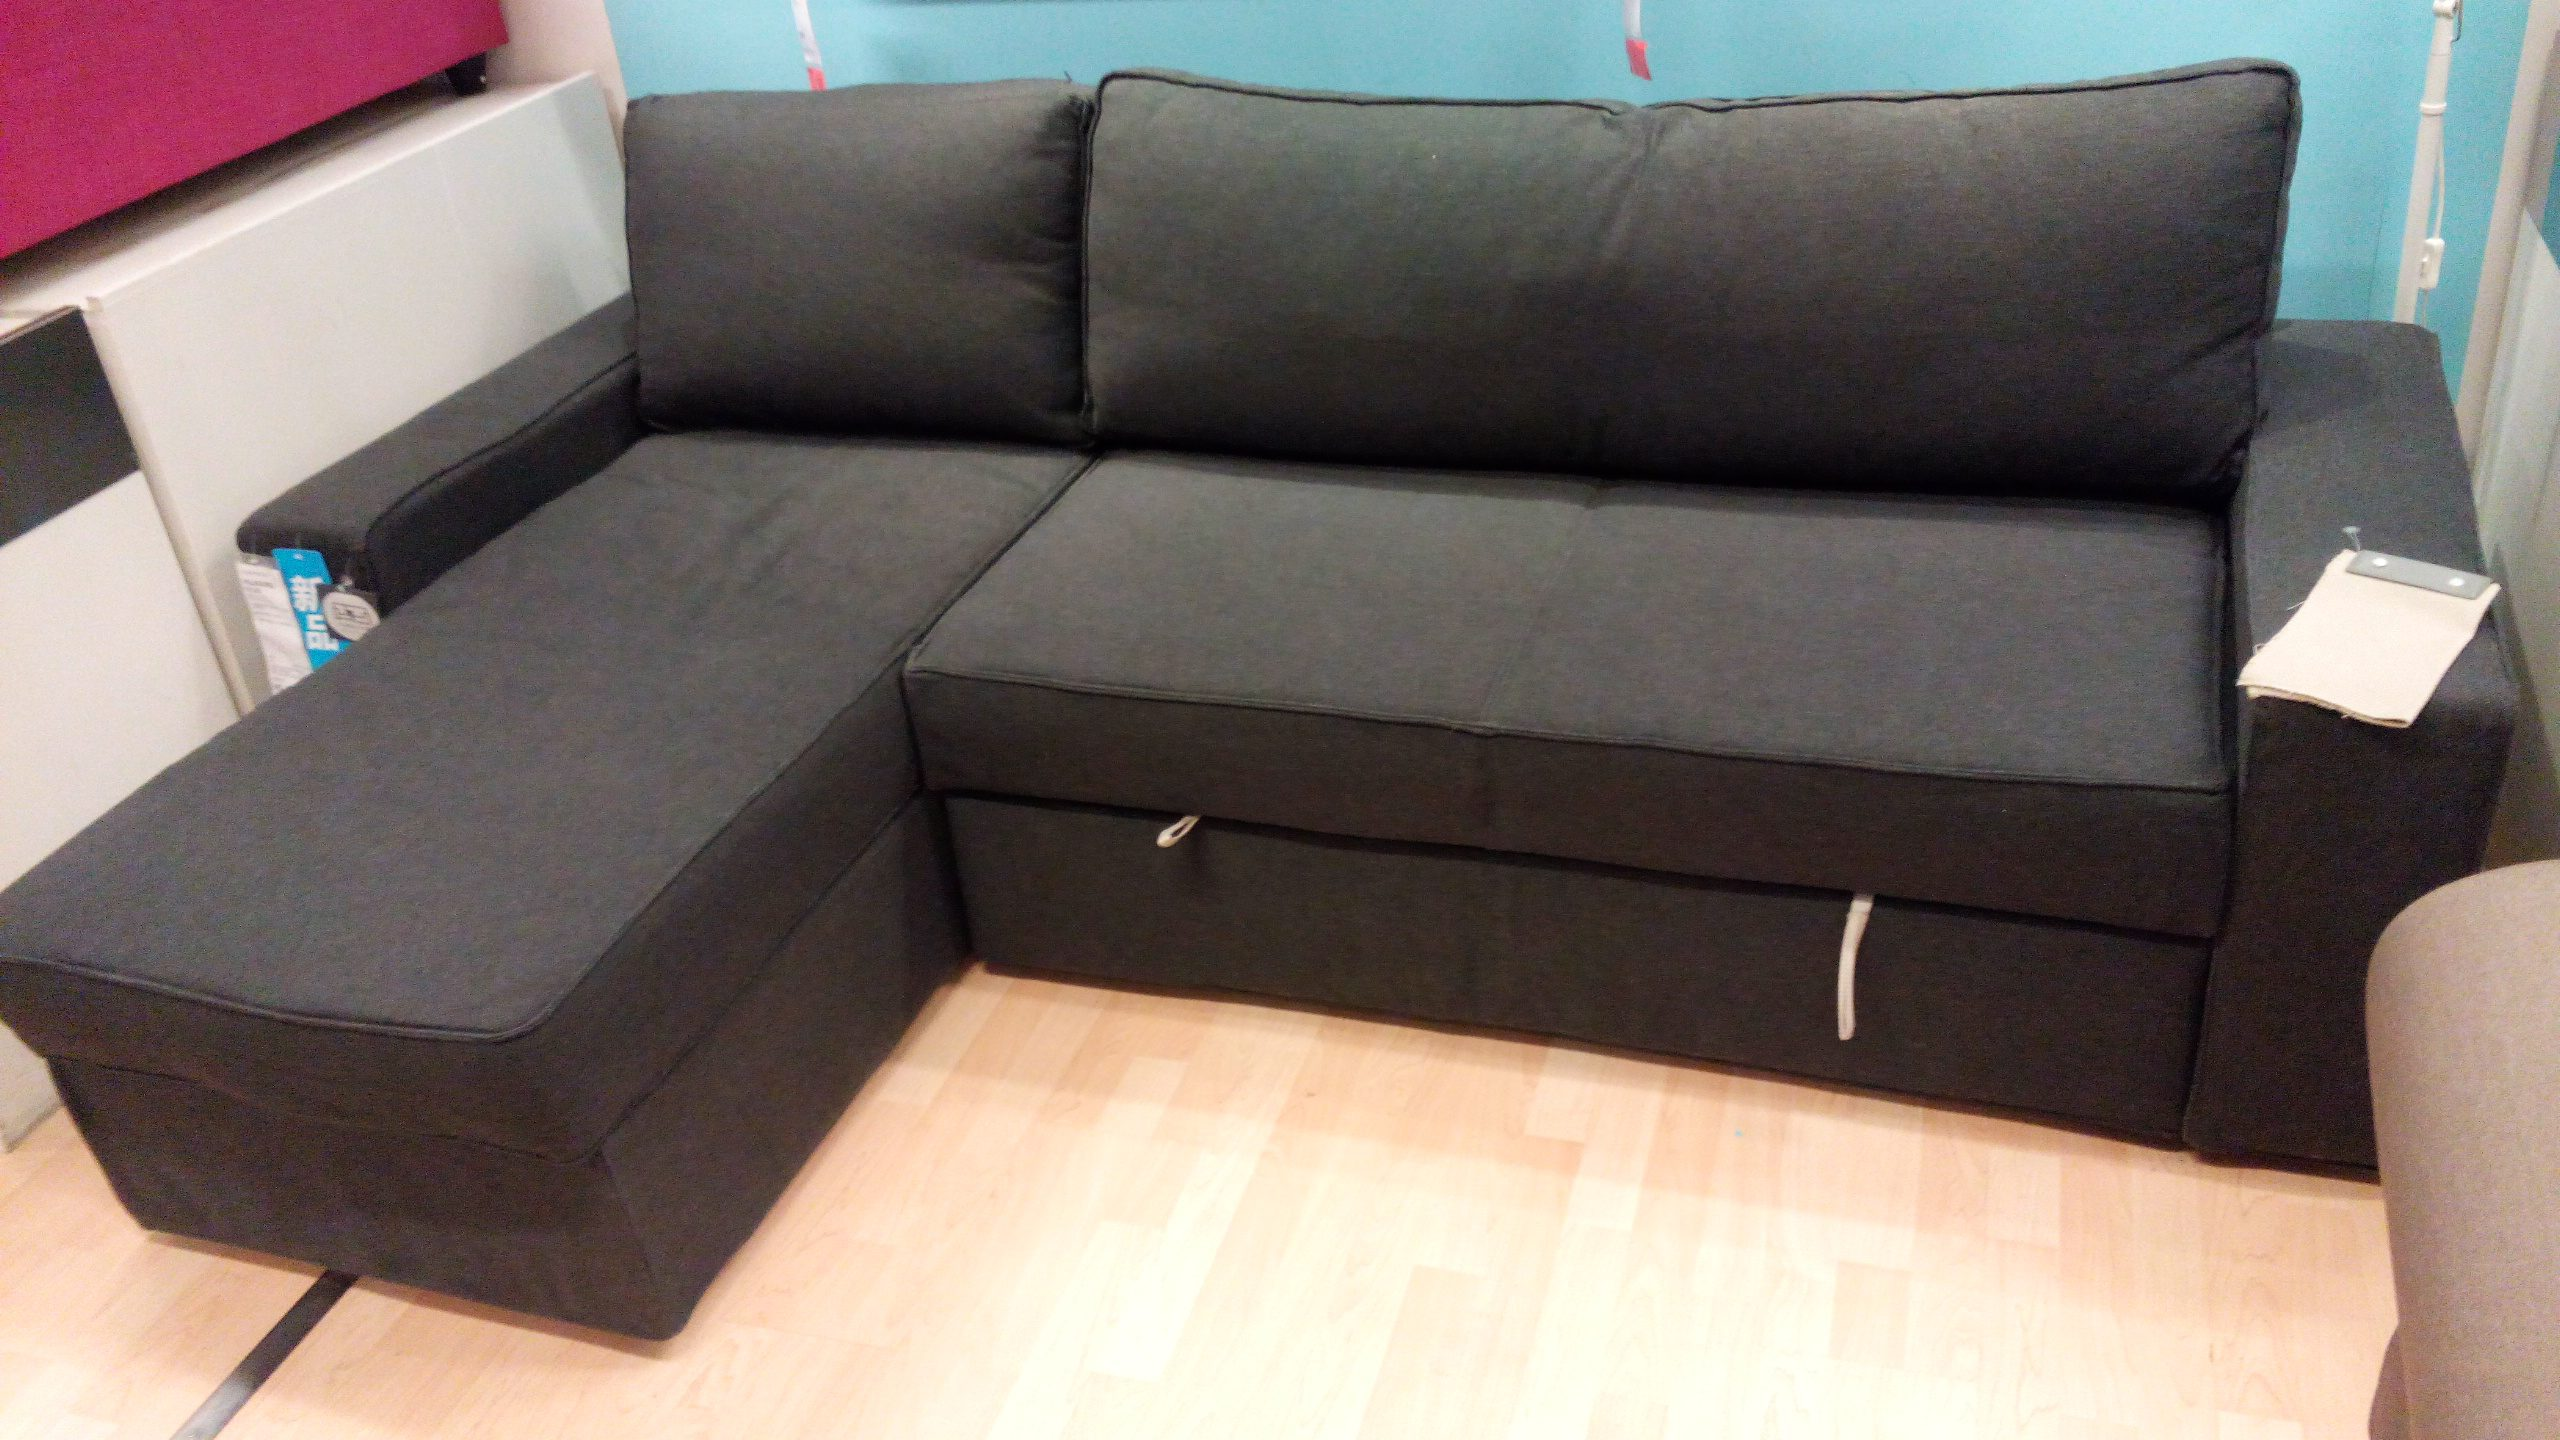 Schlafcouch ikea  IKEA Vilasund and Backabro Review - Return of the Sofa Bed Clones!